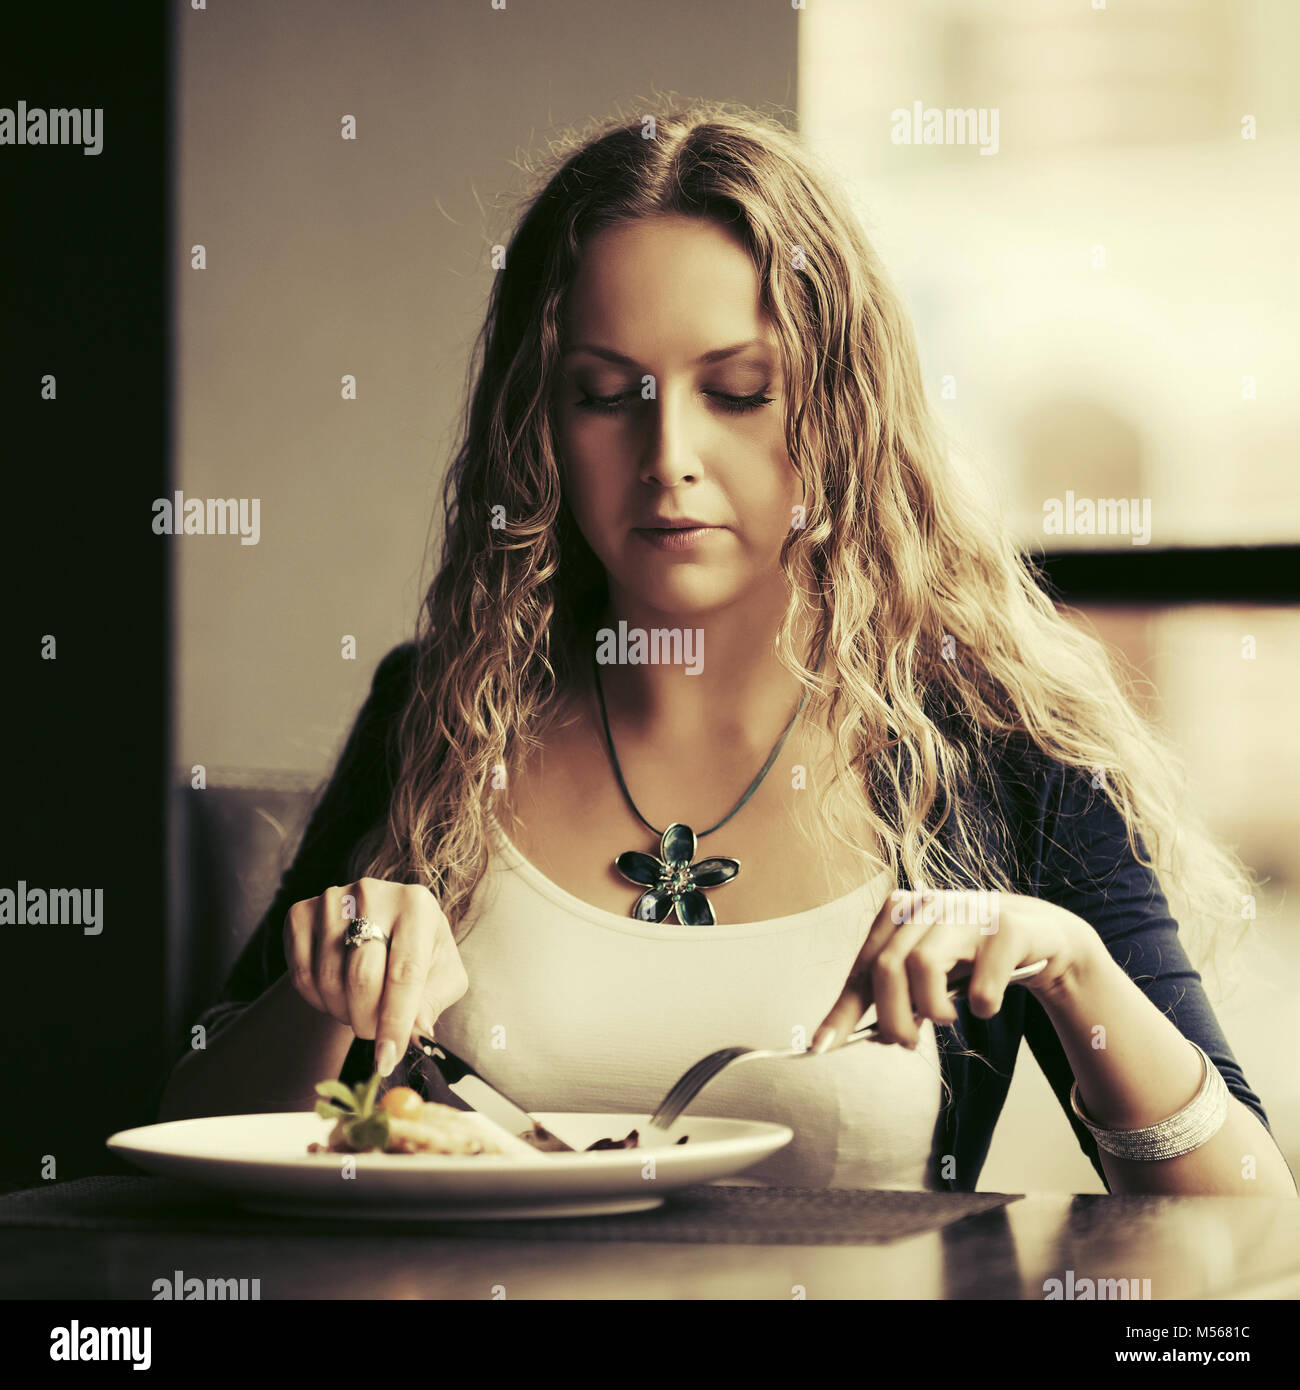 Beautiful young woman dining at restaurant Stock Photo